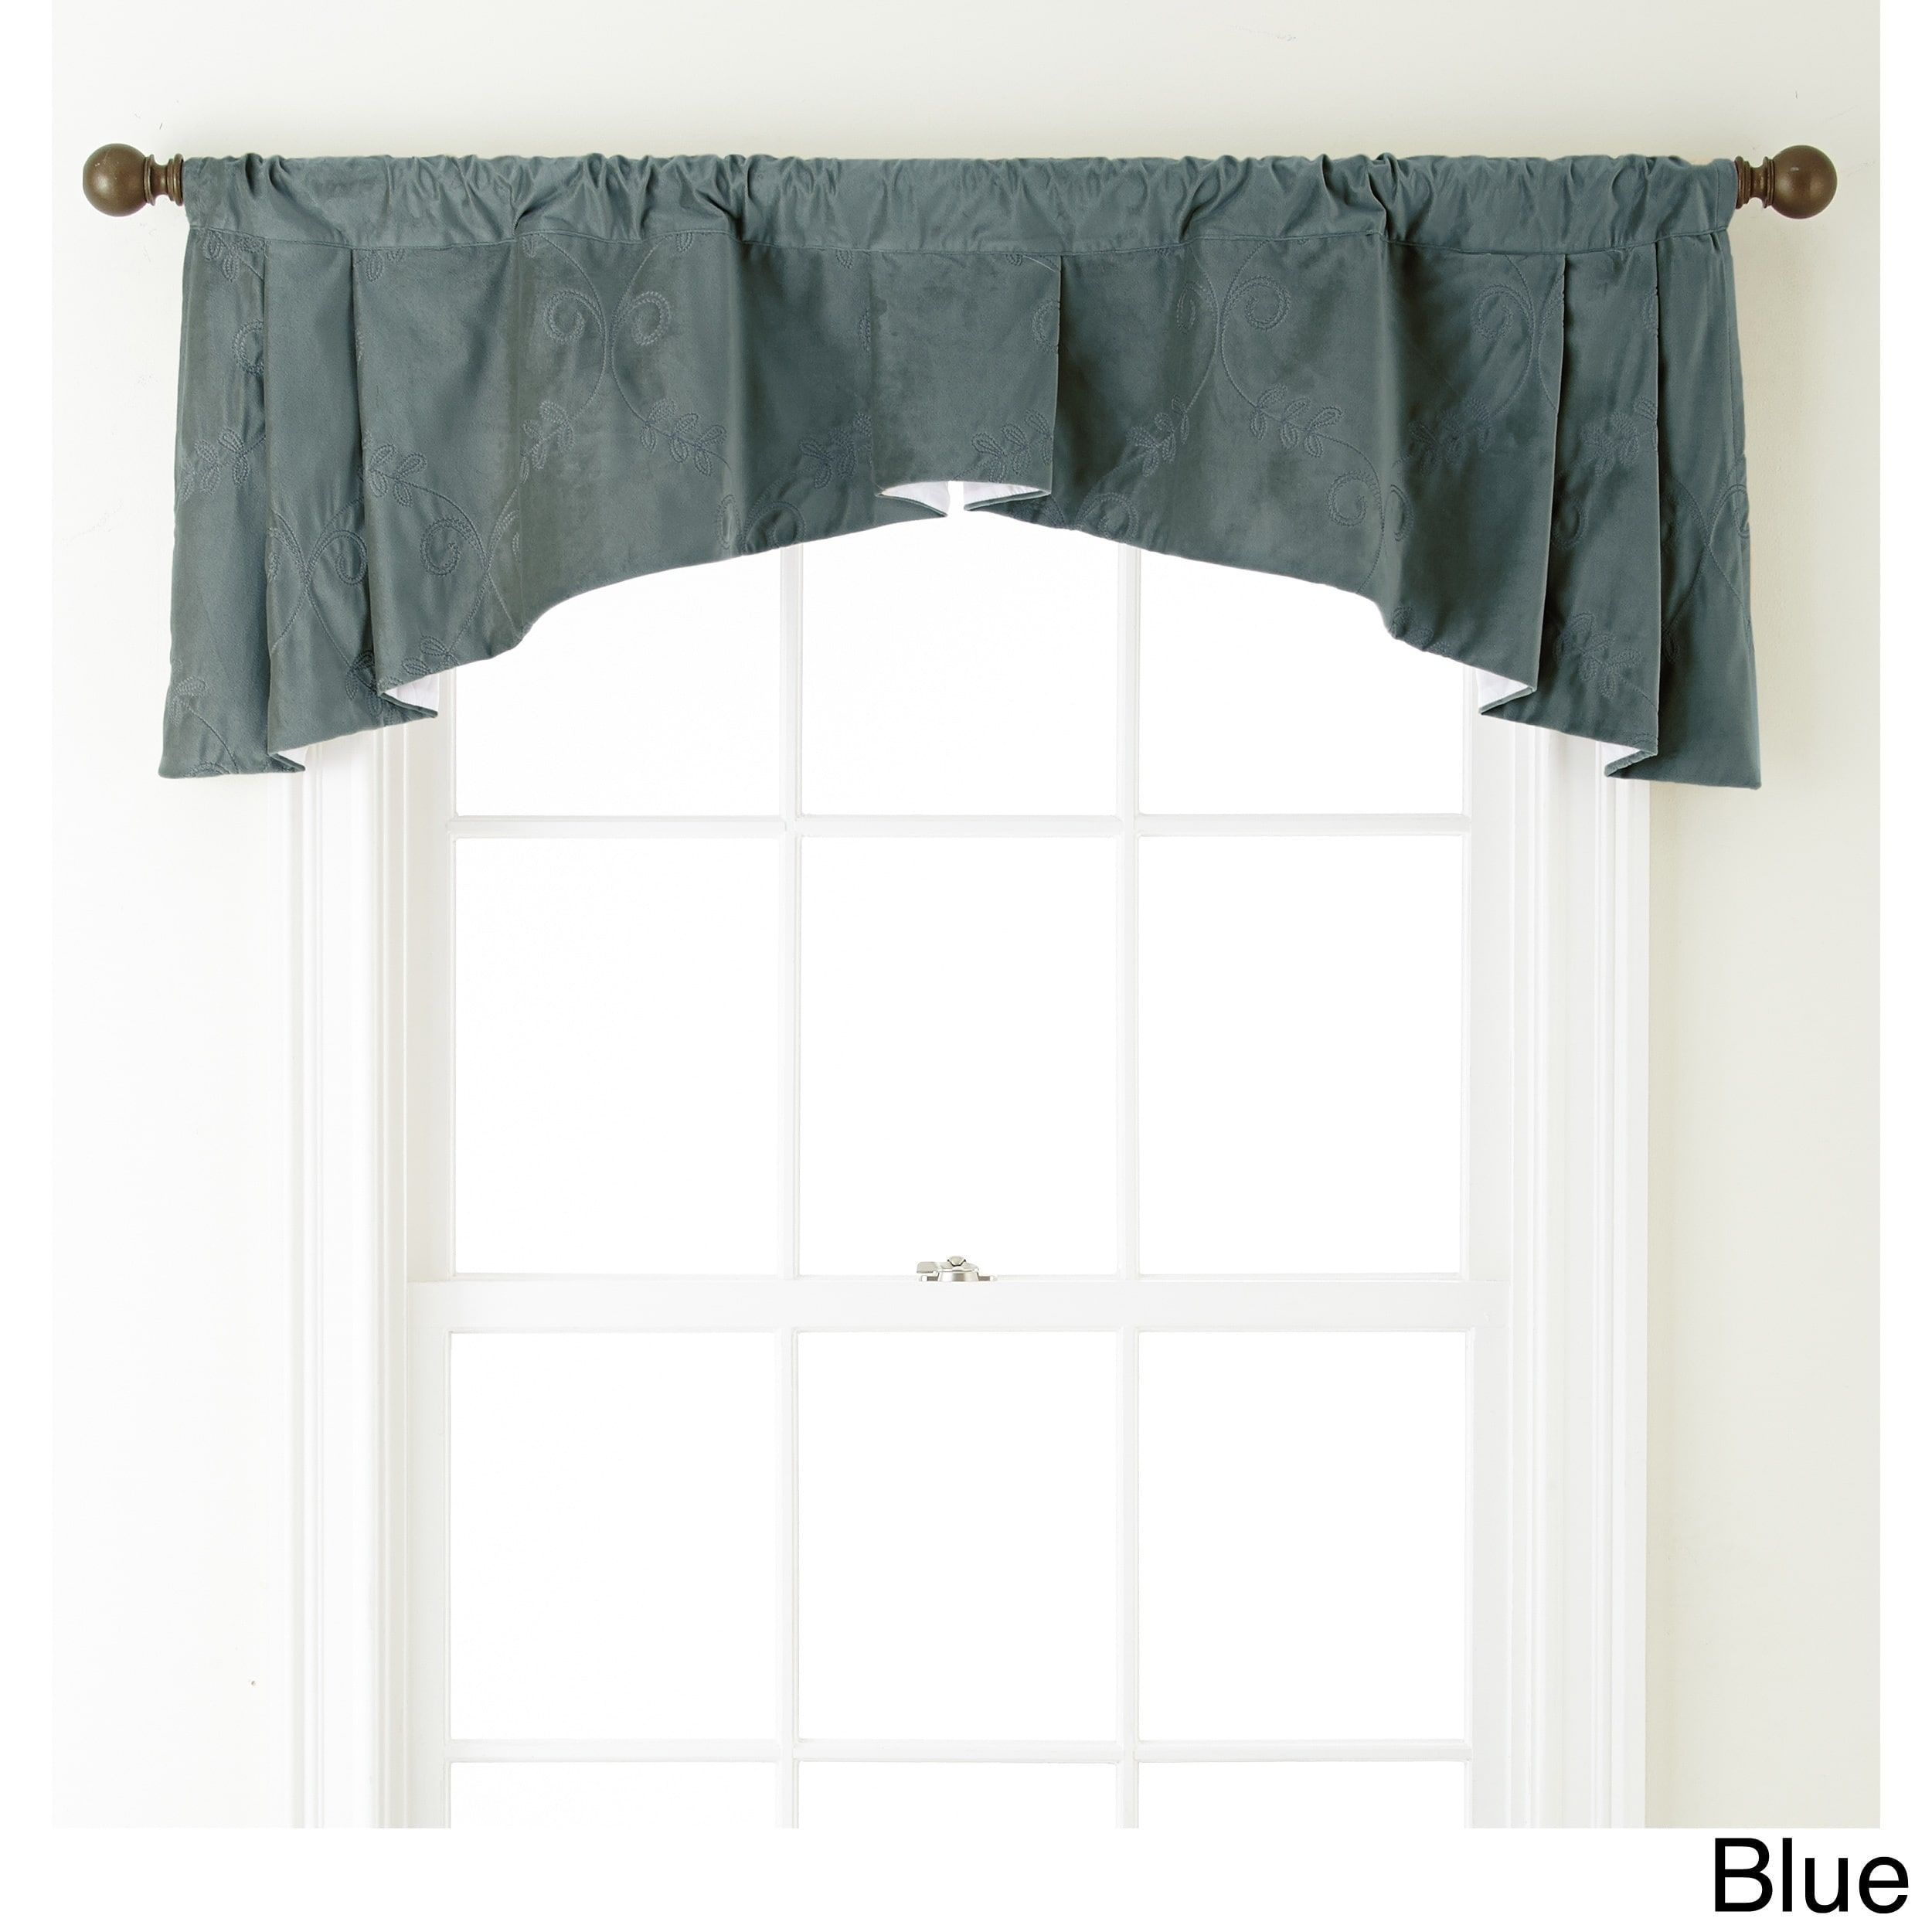 Nanshing velvet x inch embroidered curtain valance x